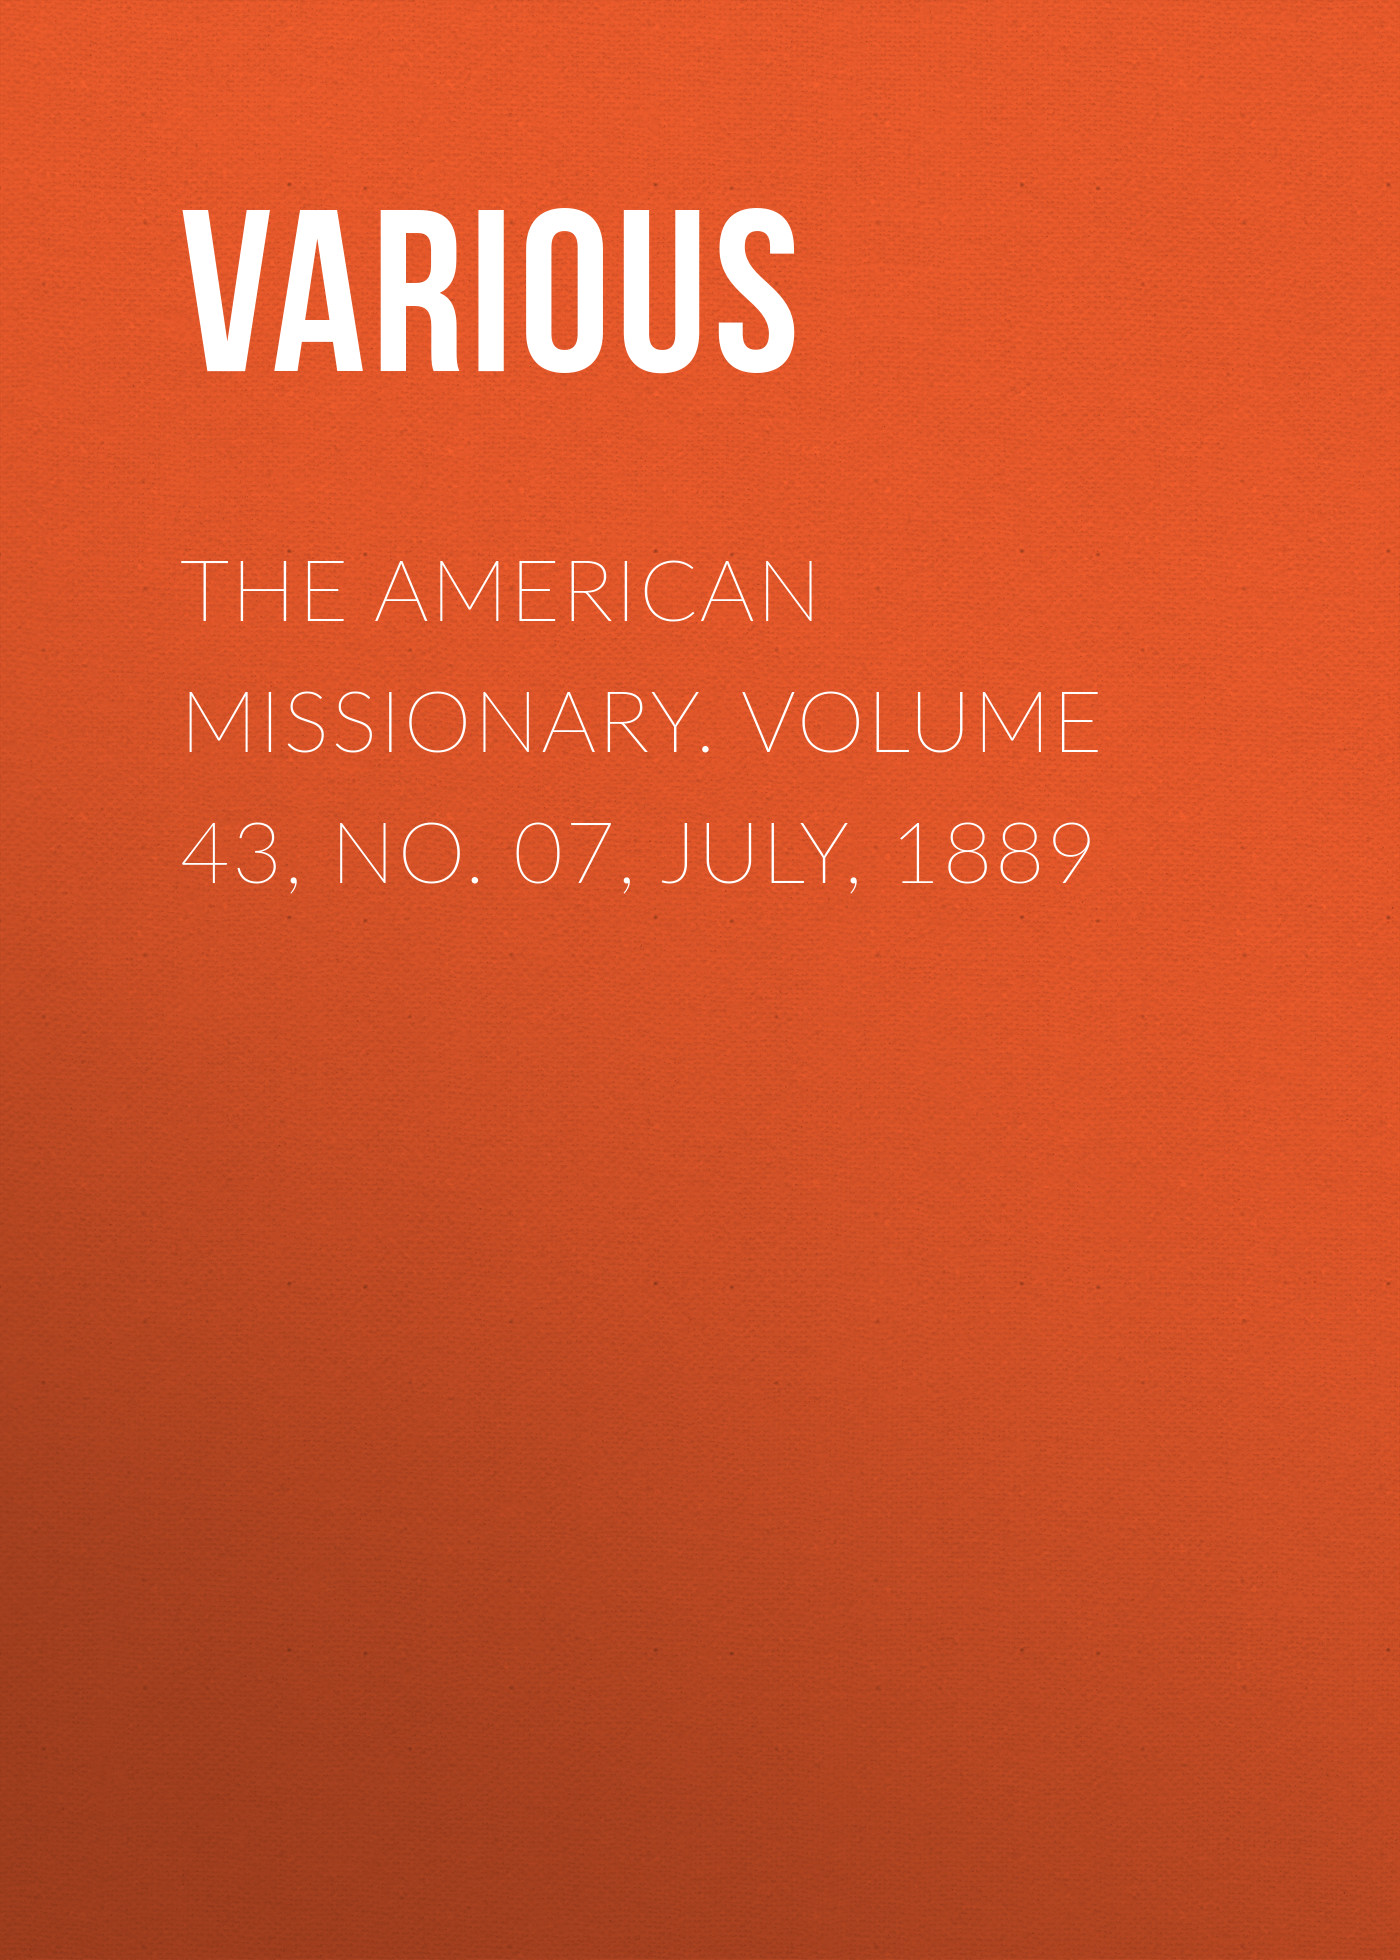 Various The American Missionary. Volume 43, No. 07, July, 1889